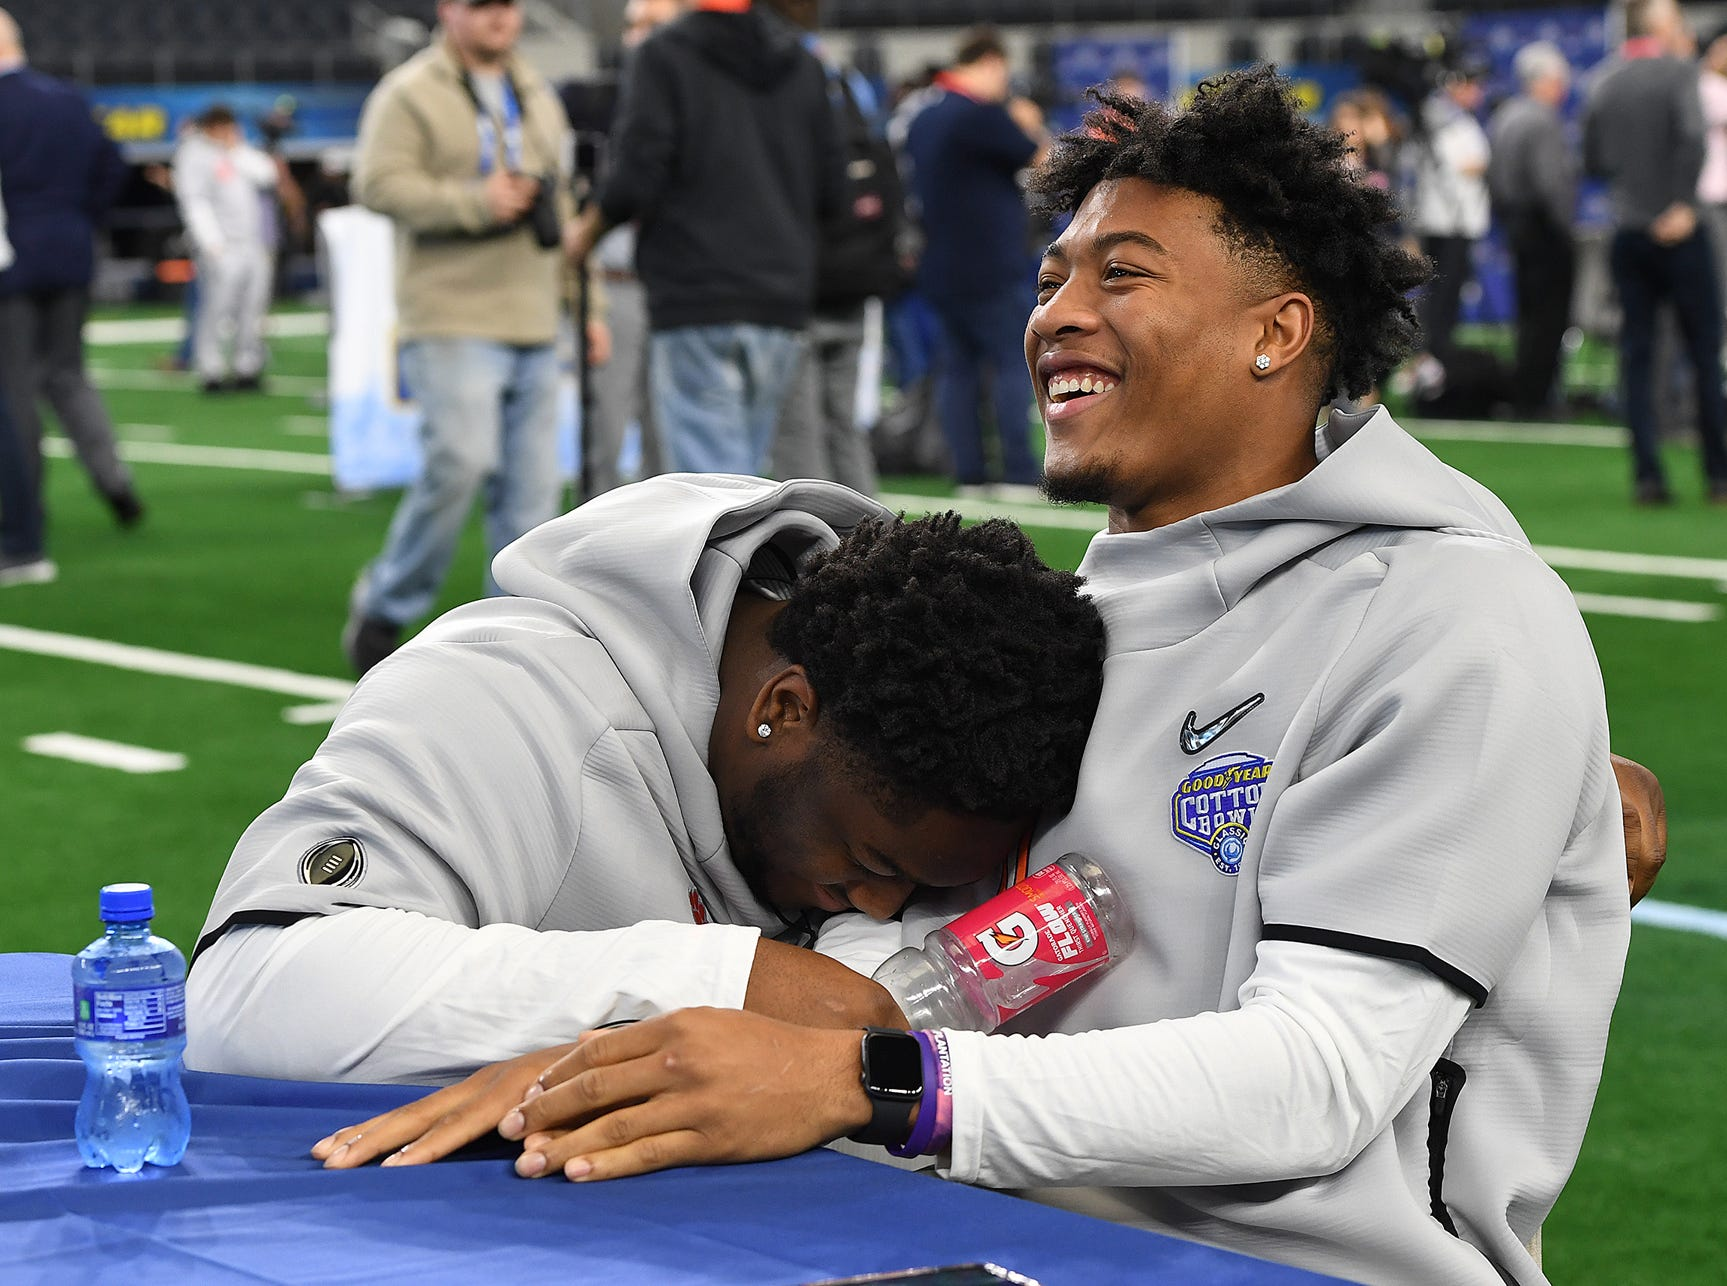 Clemson linebacker Logan Rudolph, left, laughs as he interviews safety Isaiah Simmons during the Tigers Cotton Bowl media day at AT&T Stadium in Arlington, TX Thursday, December 27, 2018.